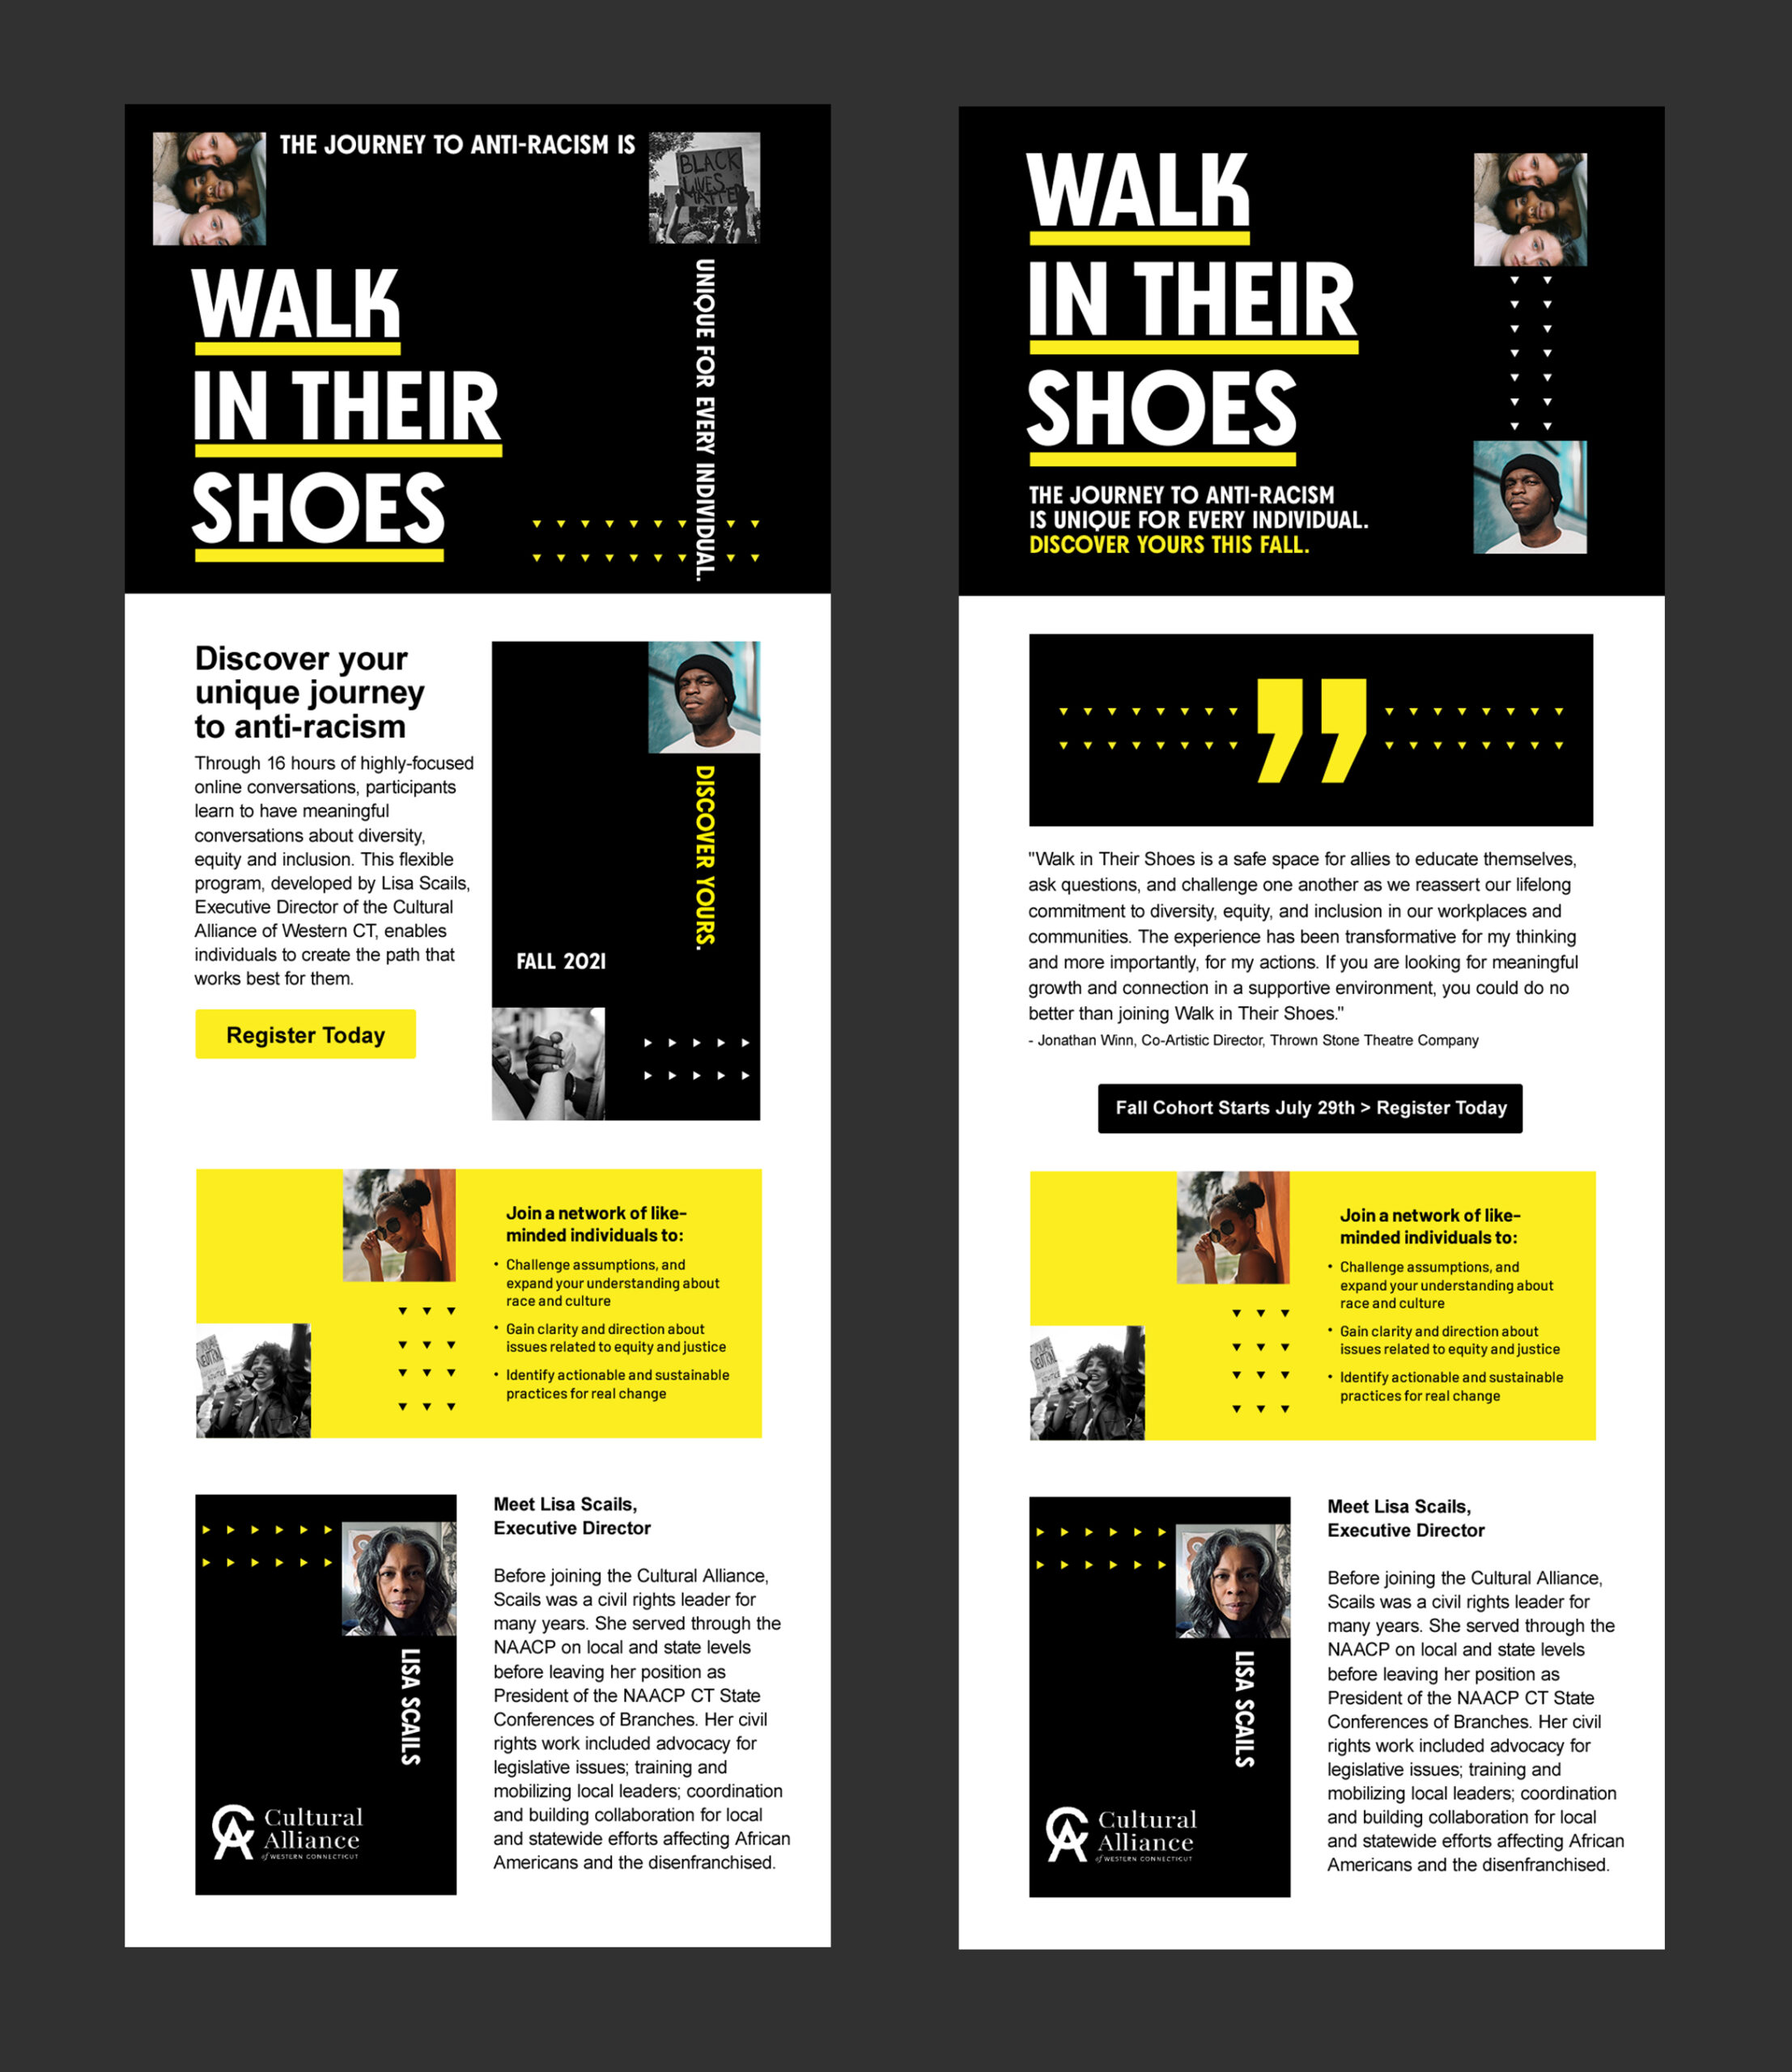 WalkinTheirShoes_Emails